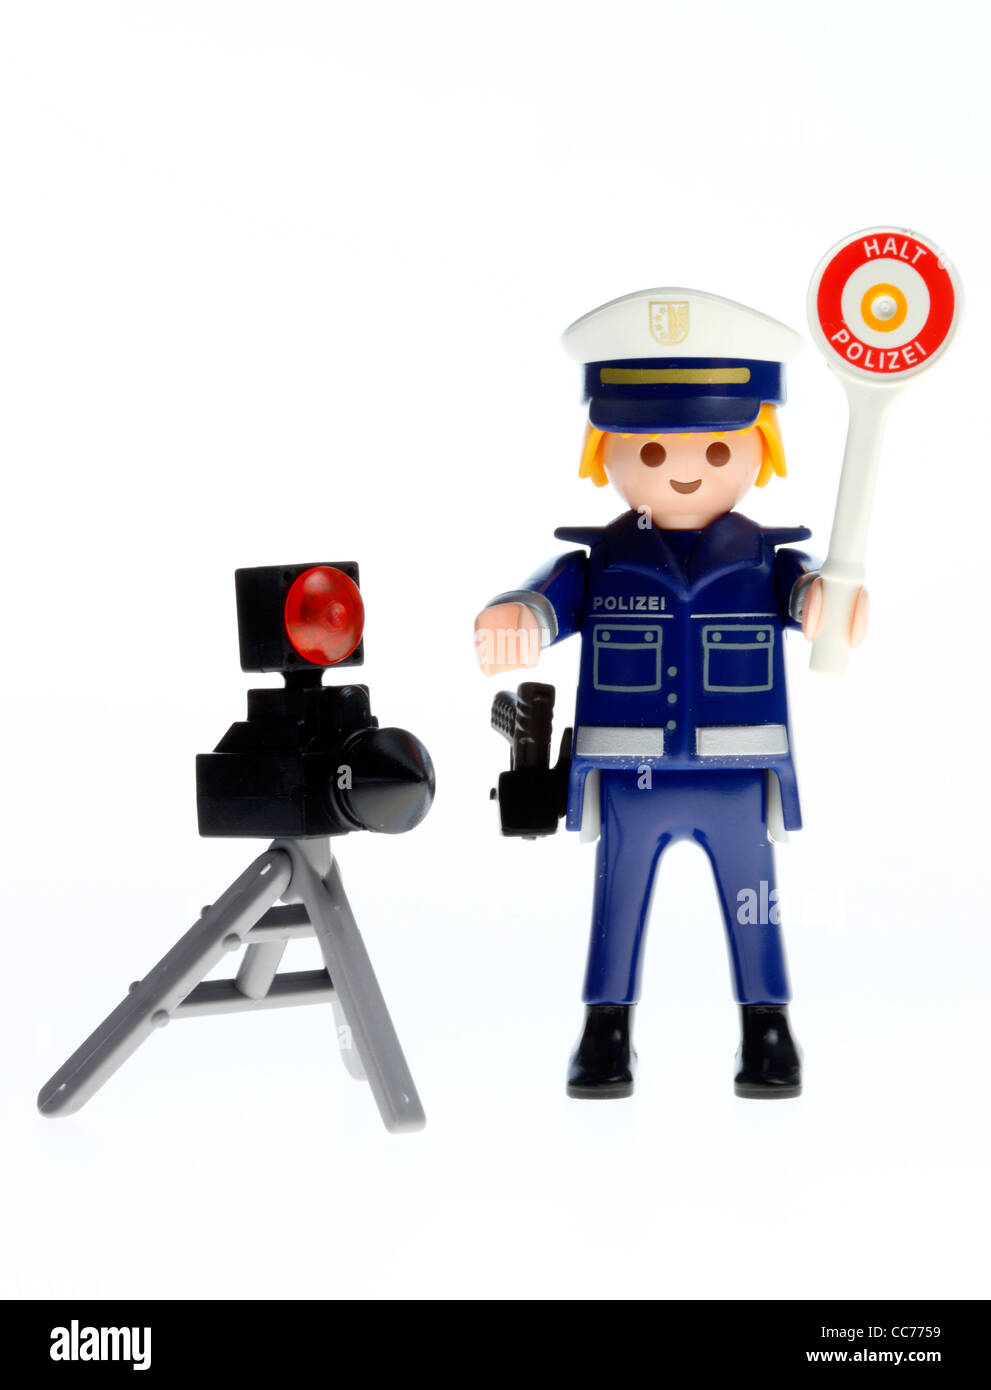 Playmobil Stock Photos & Playmobil Stock Images - Alamy